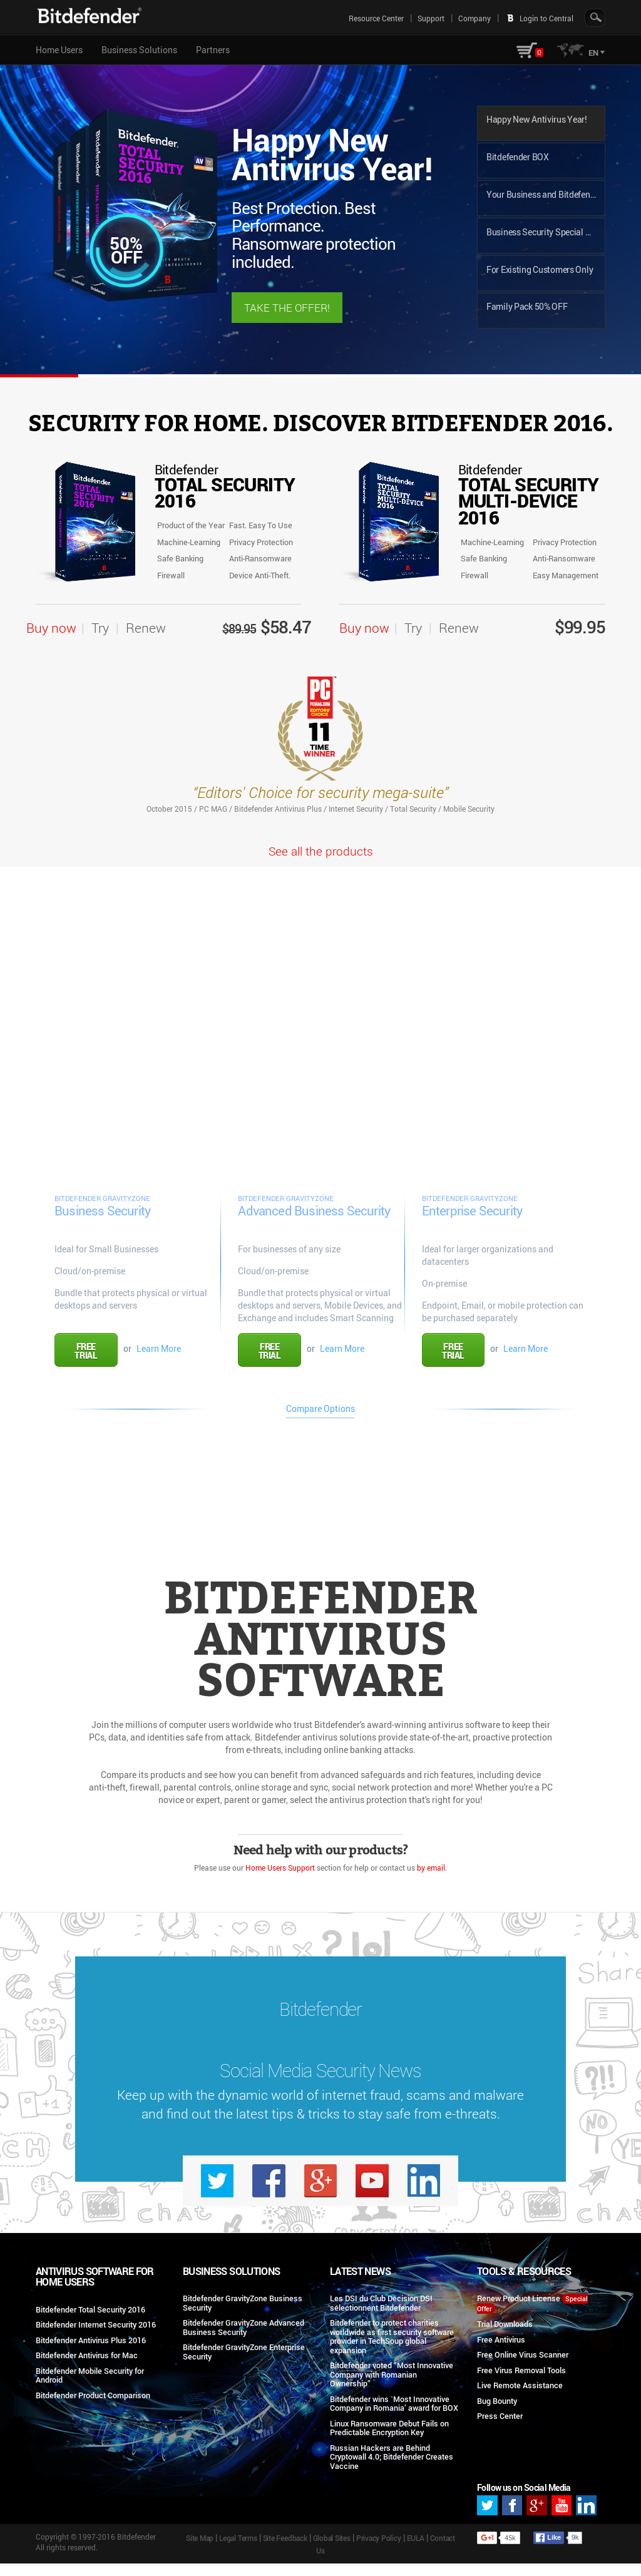 Bitdefender Competitors, Revenue and Employees - Owler